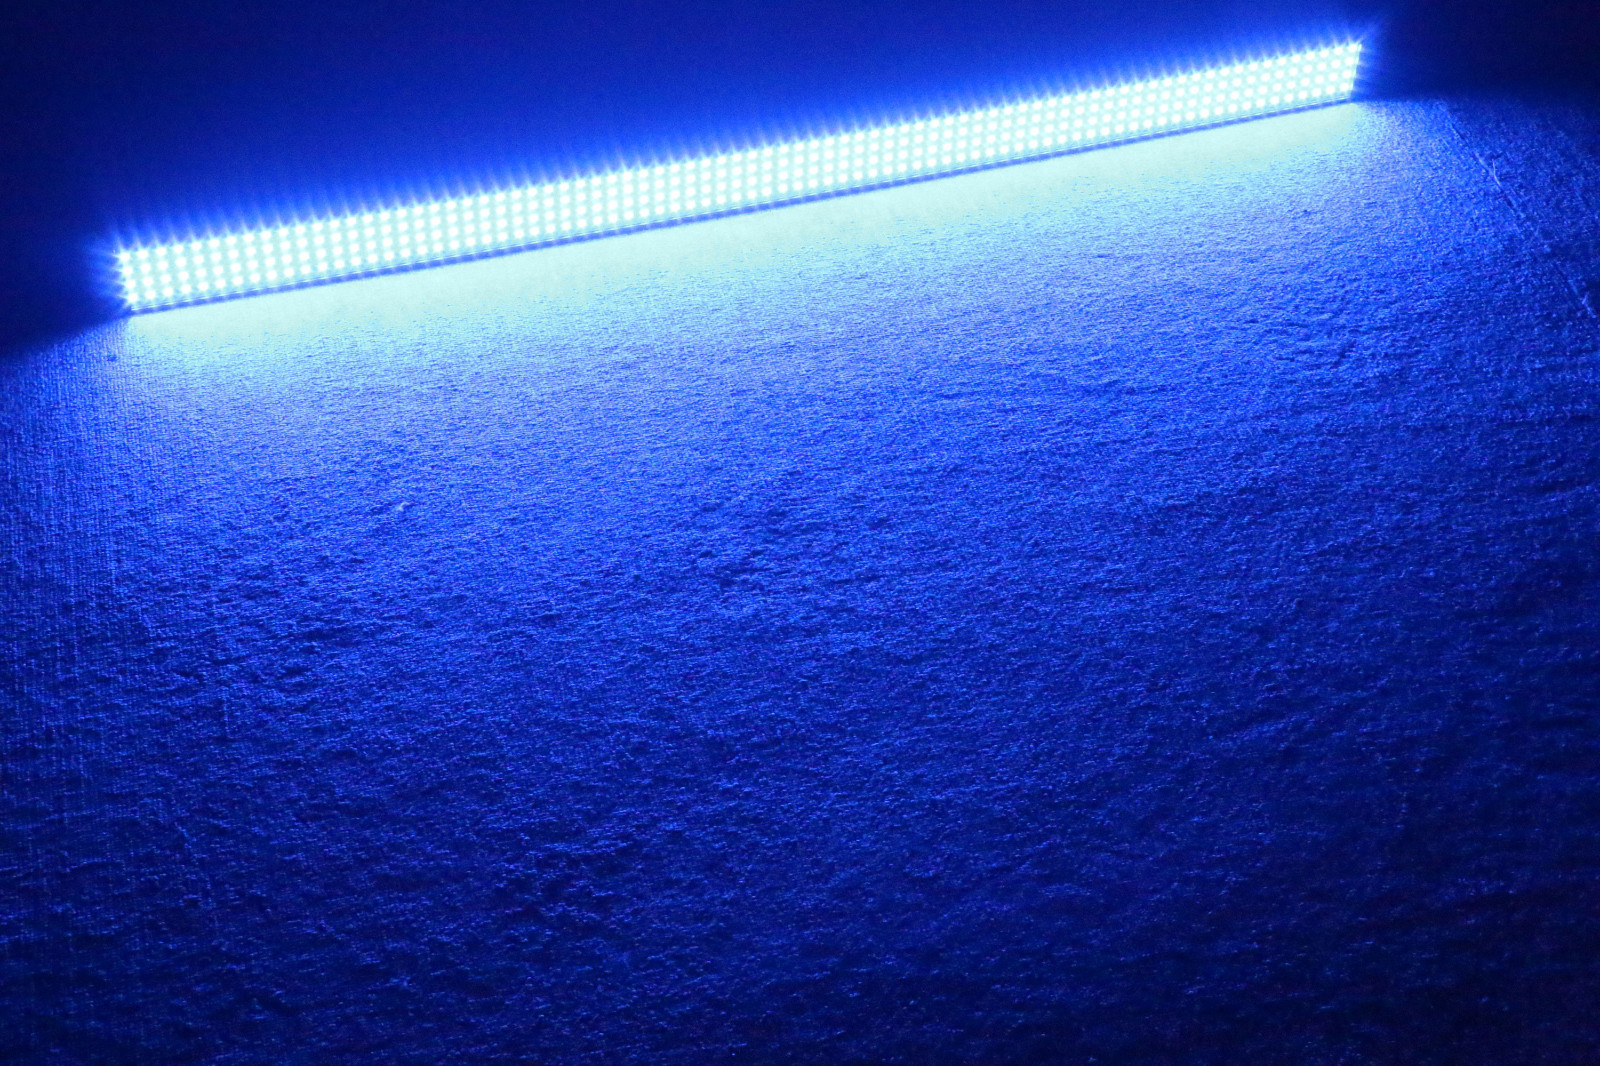 Marslite pixel led wash light bar to decorative for party-7